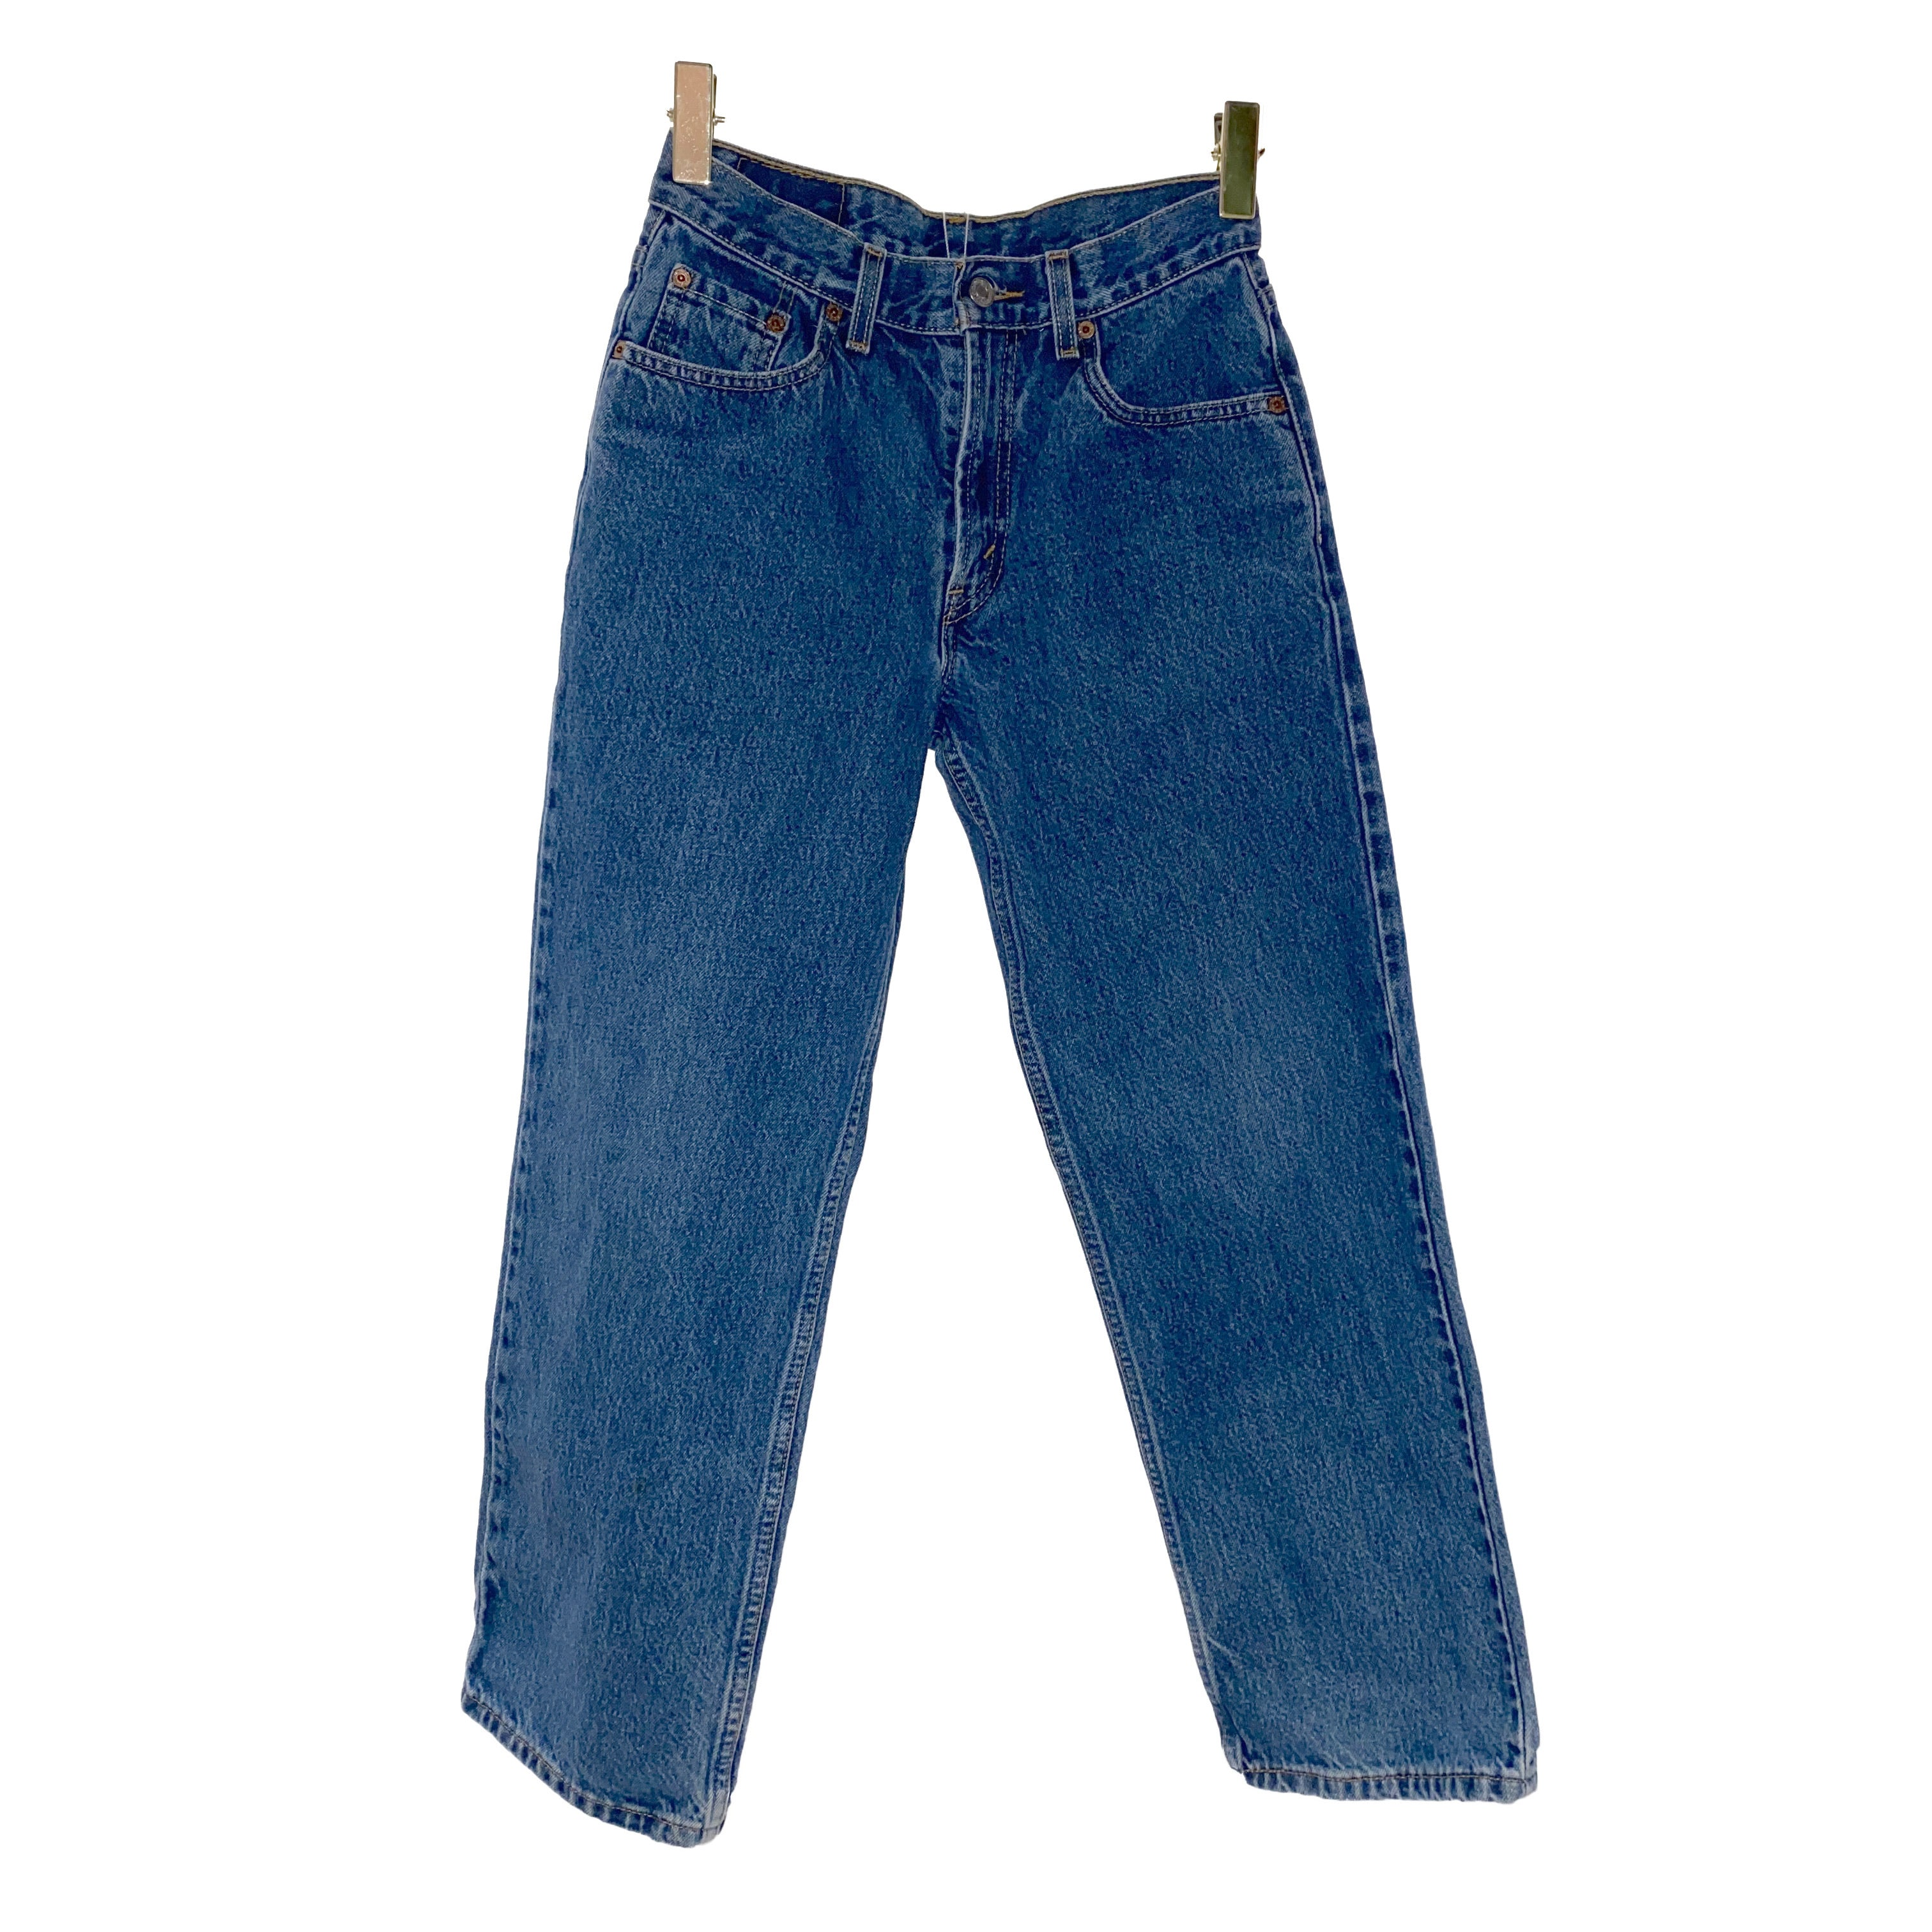 Levi's 550 relaxed straight leg